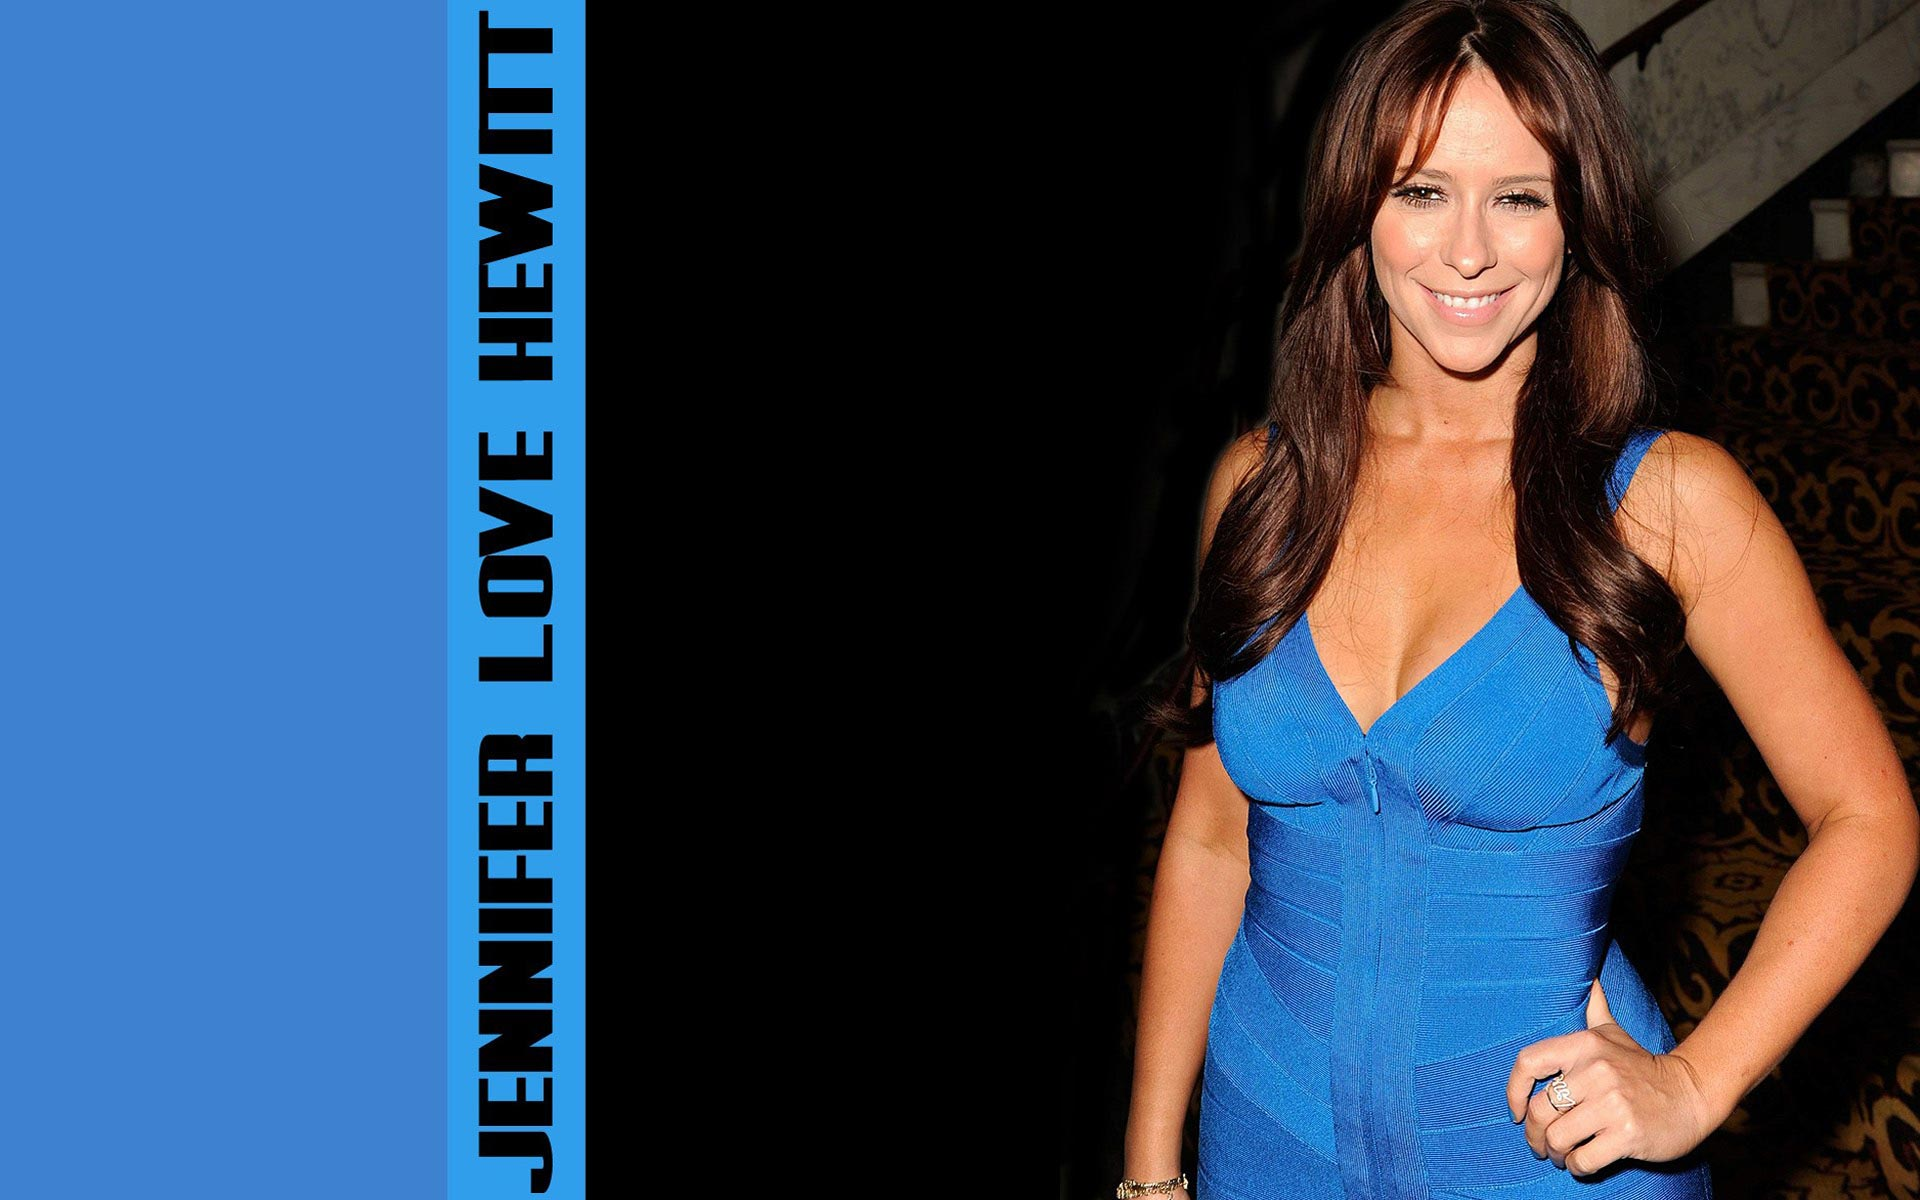 New Love Hot Wallpaper : Jennifer Love Hewitt Hot Wallpapers (+12)